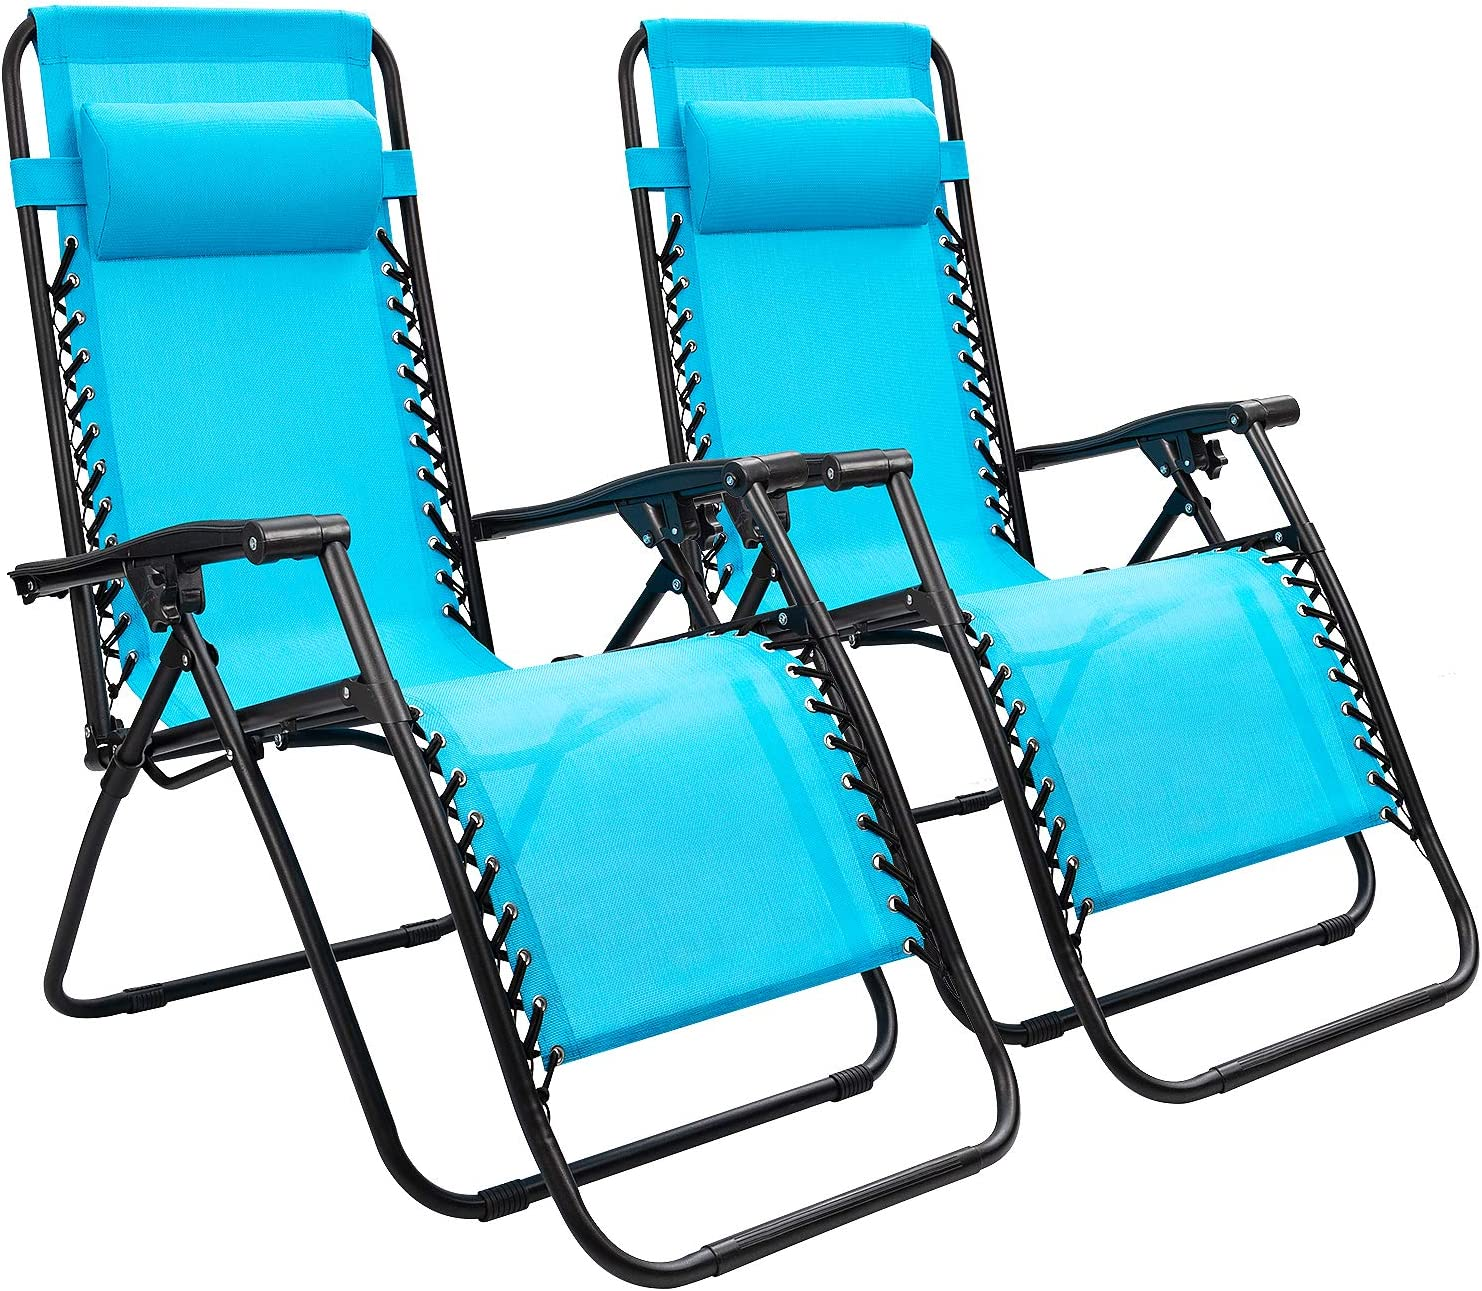 Devoko Patio Zero Gravity Chair Outdoor Folding Adjustable Reclining Chairs Pool Side Using Lawn Lounge Chair with Pillow Set of 2 Blue